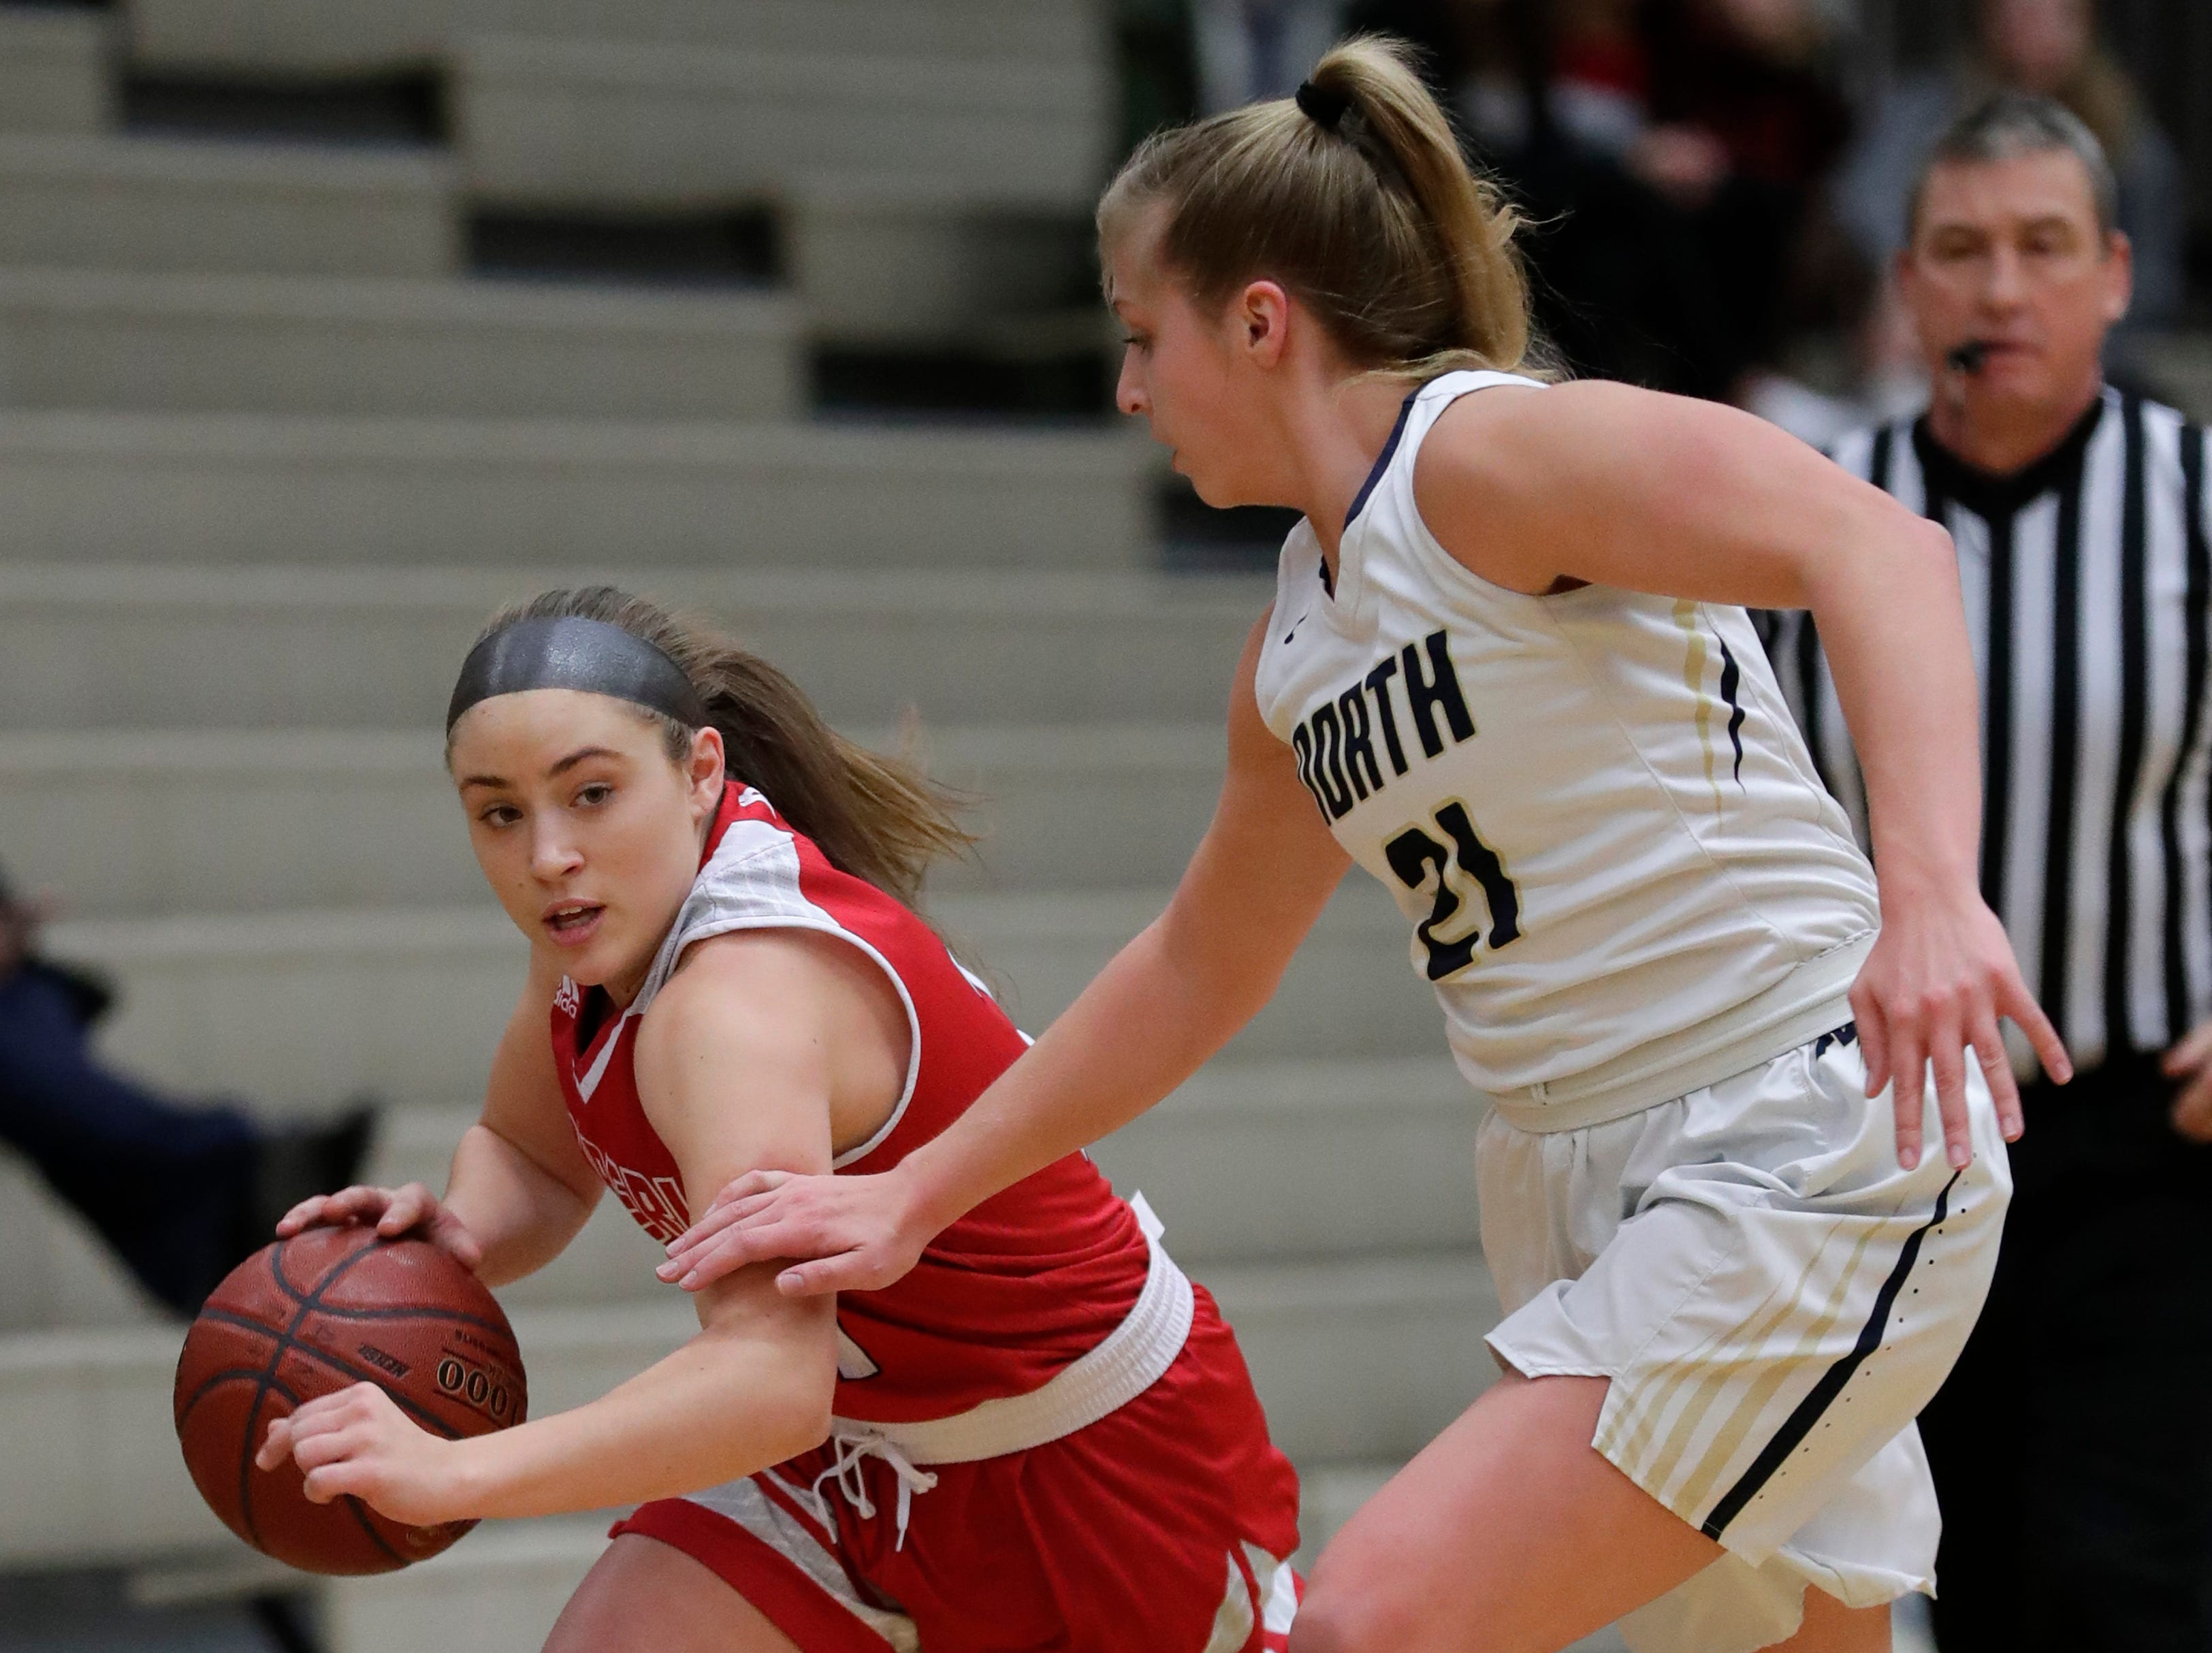 Kimberly High School's Kiara Schmidt (12) tries to get past Appleton North High School's Lilli Van Handel (21) during their girls basketball game Tuesday, January 8, 2019, in Appleton, Wis. 